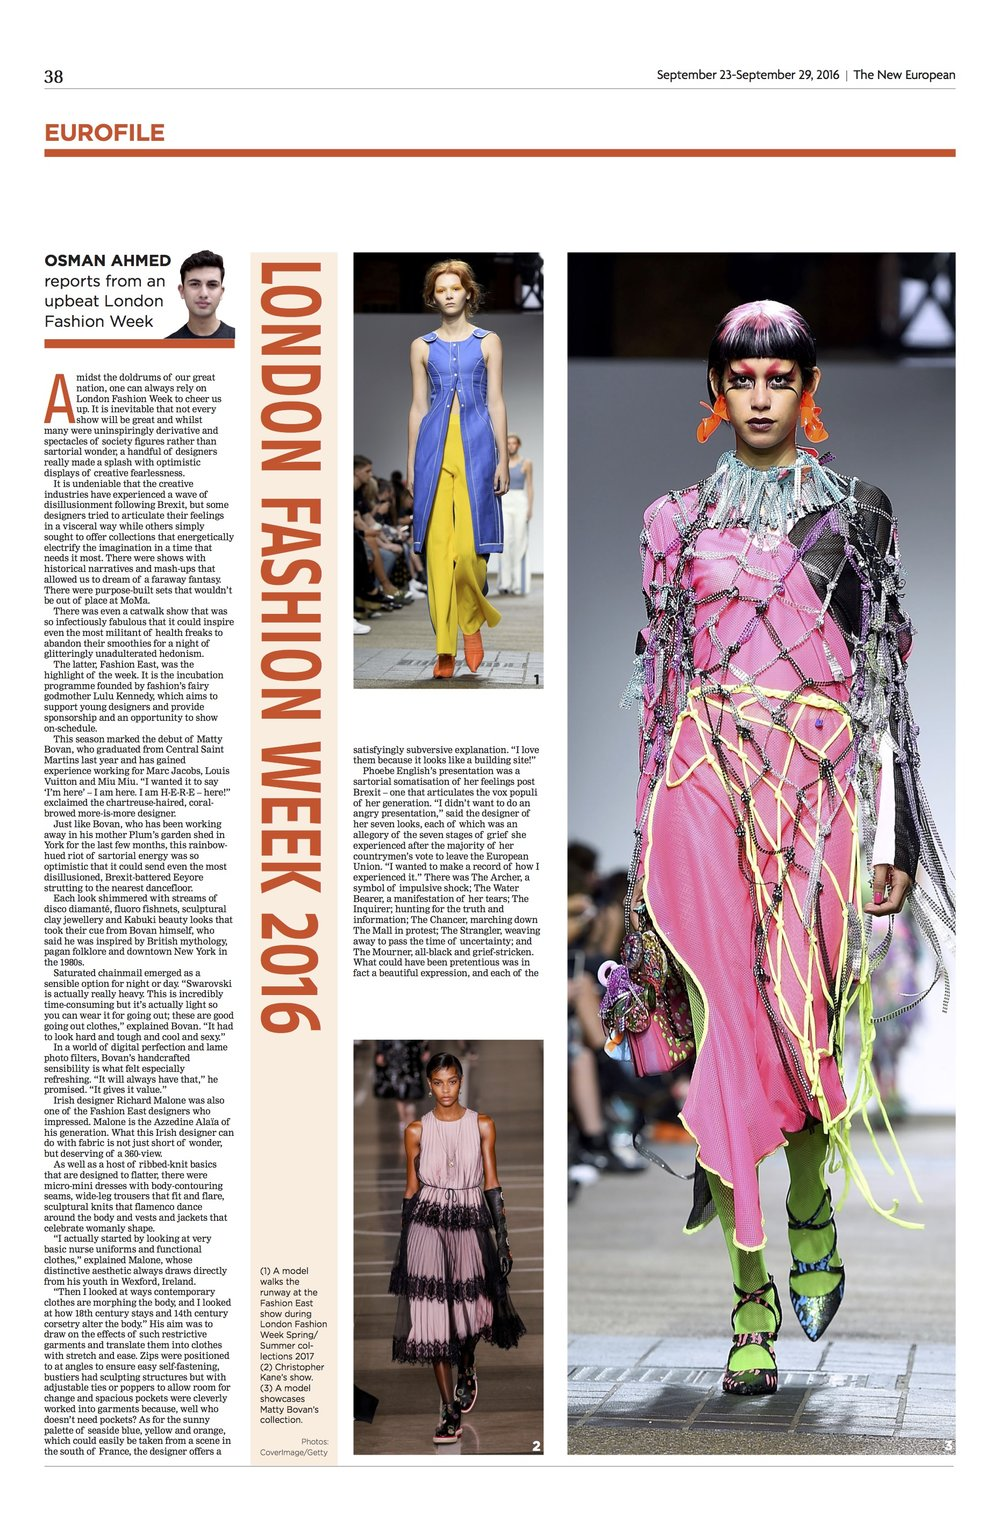 Fashion Column: LFW, The New European